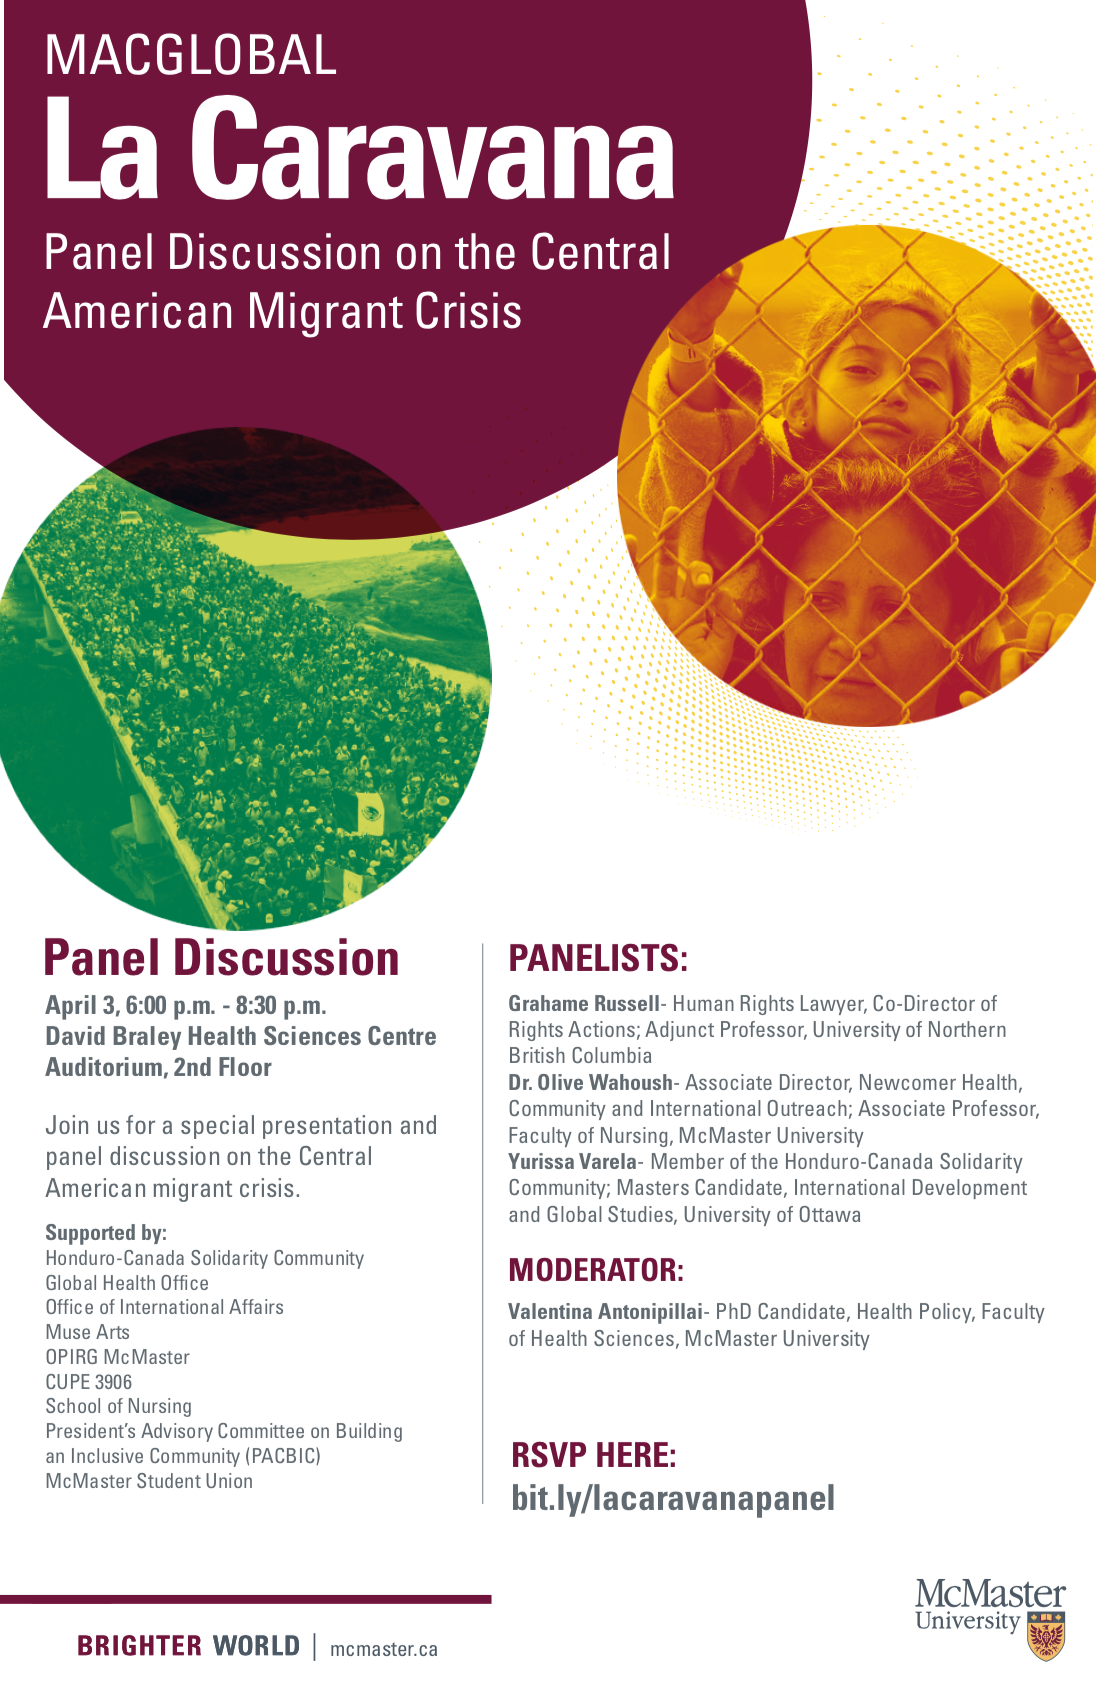 Poster of La Caravana panel discussion event.